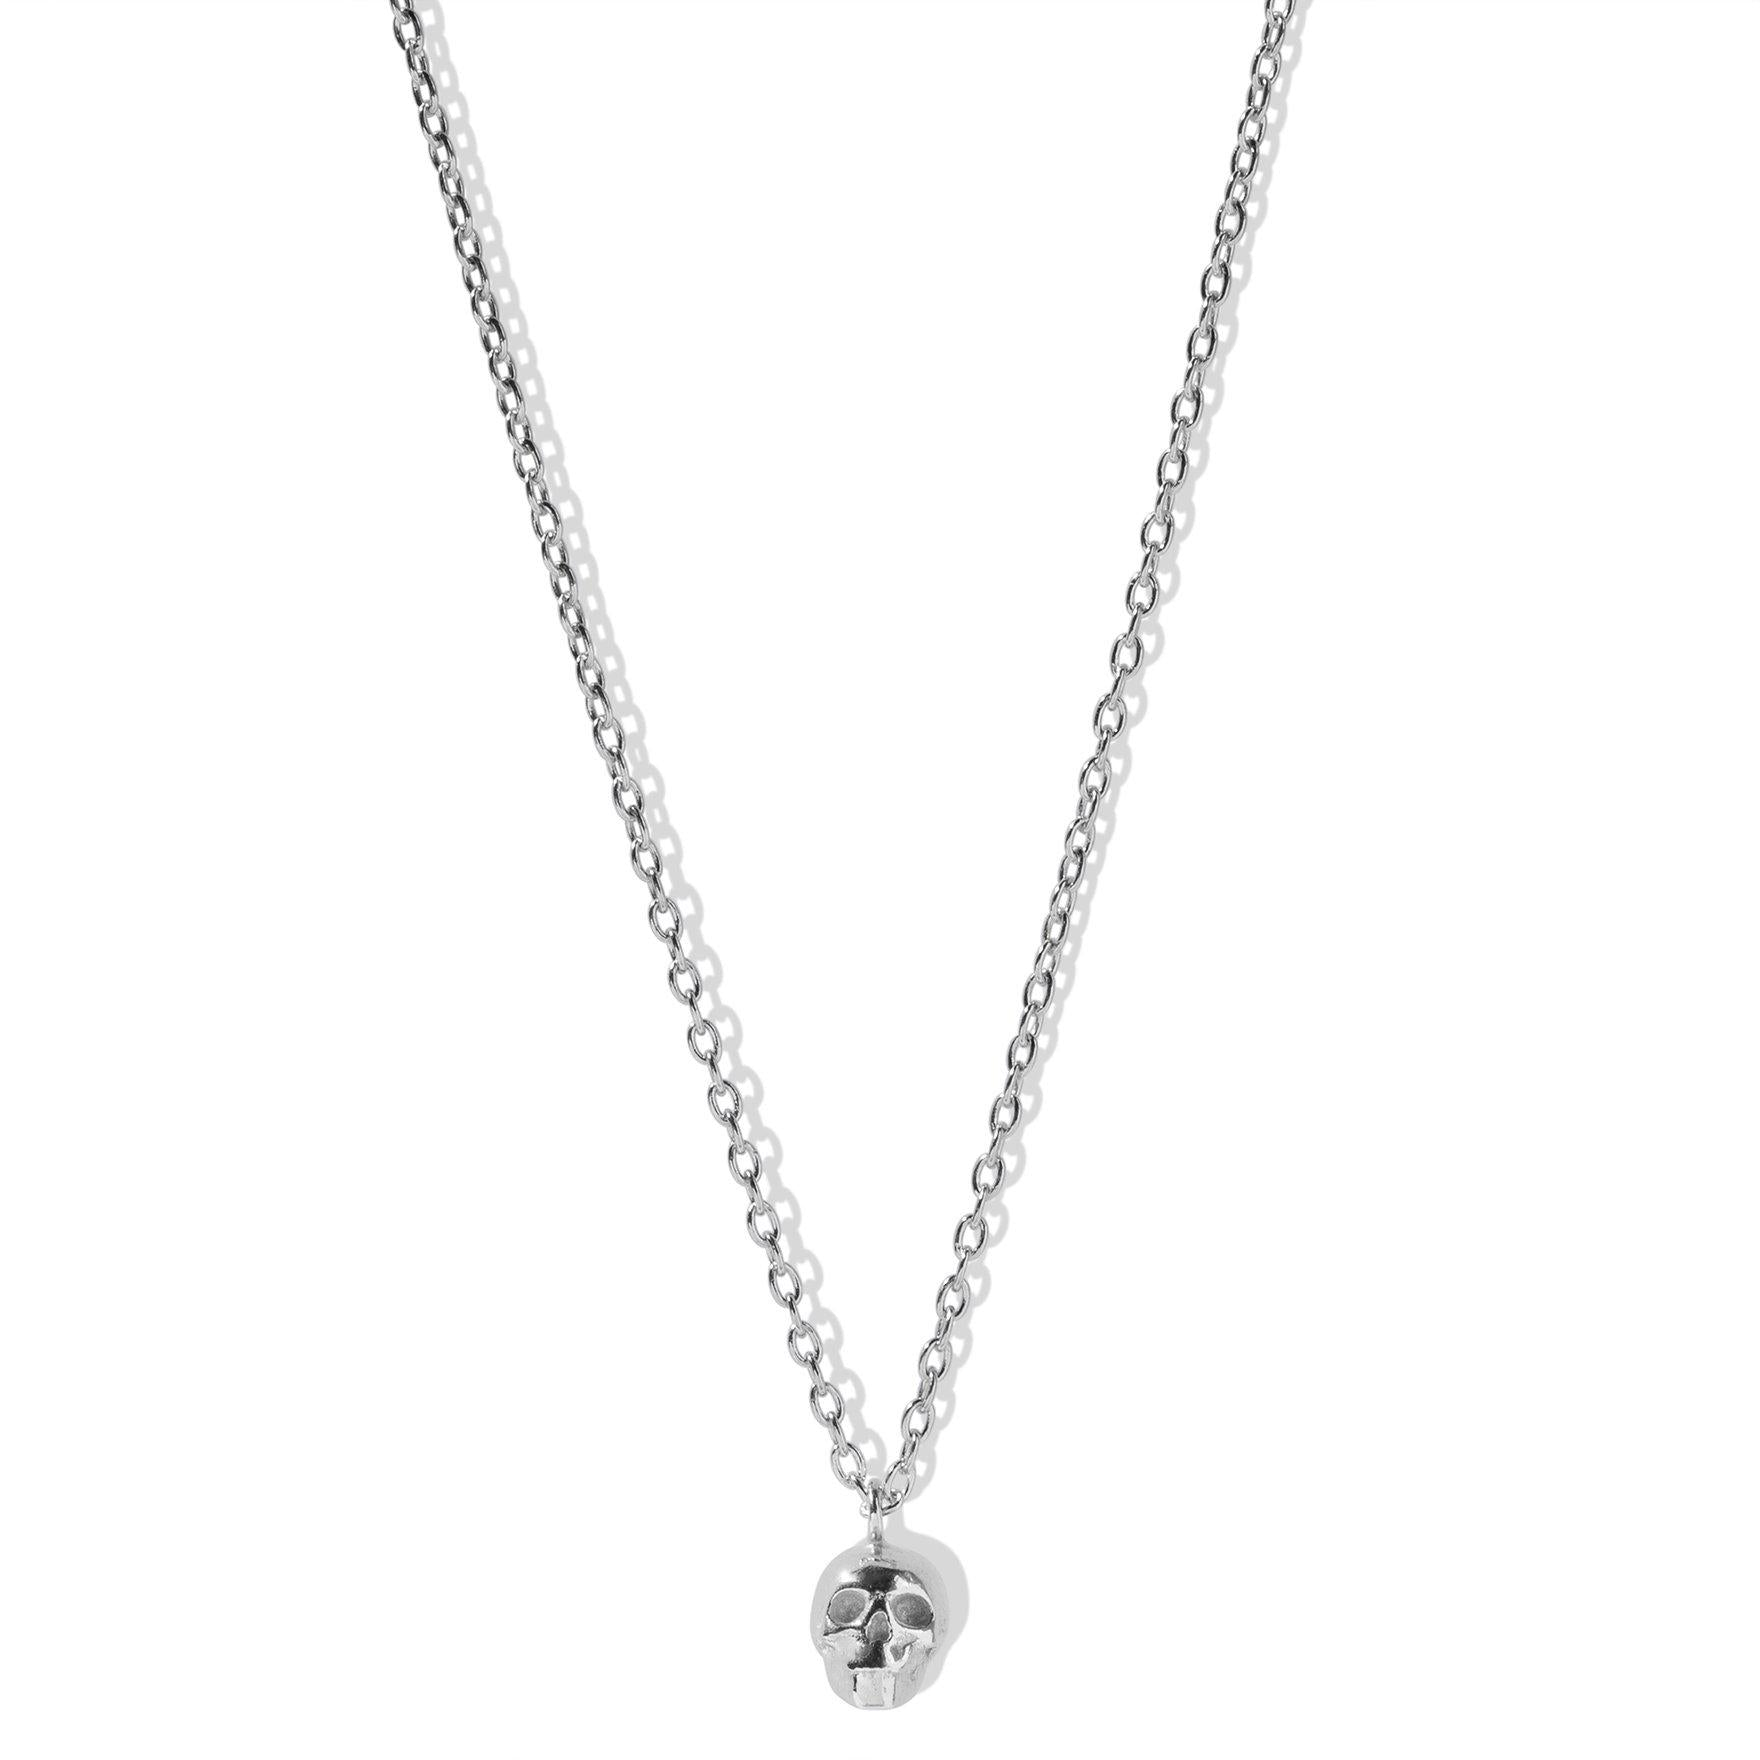 The Single Skull Necklace in Silver-Necklace-Black Betty Design